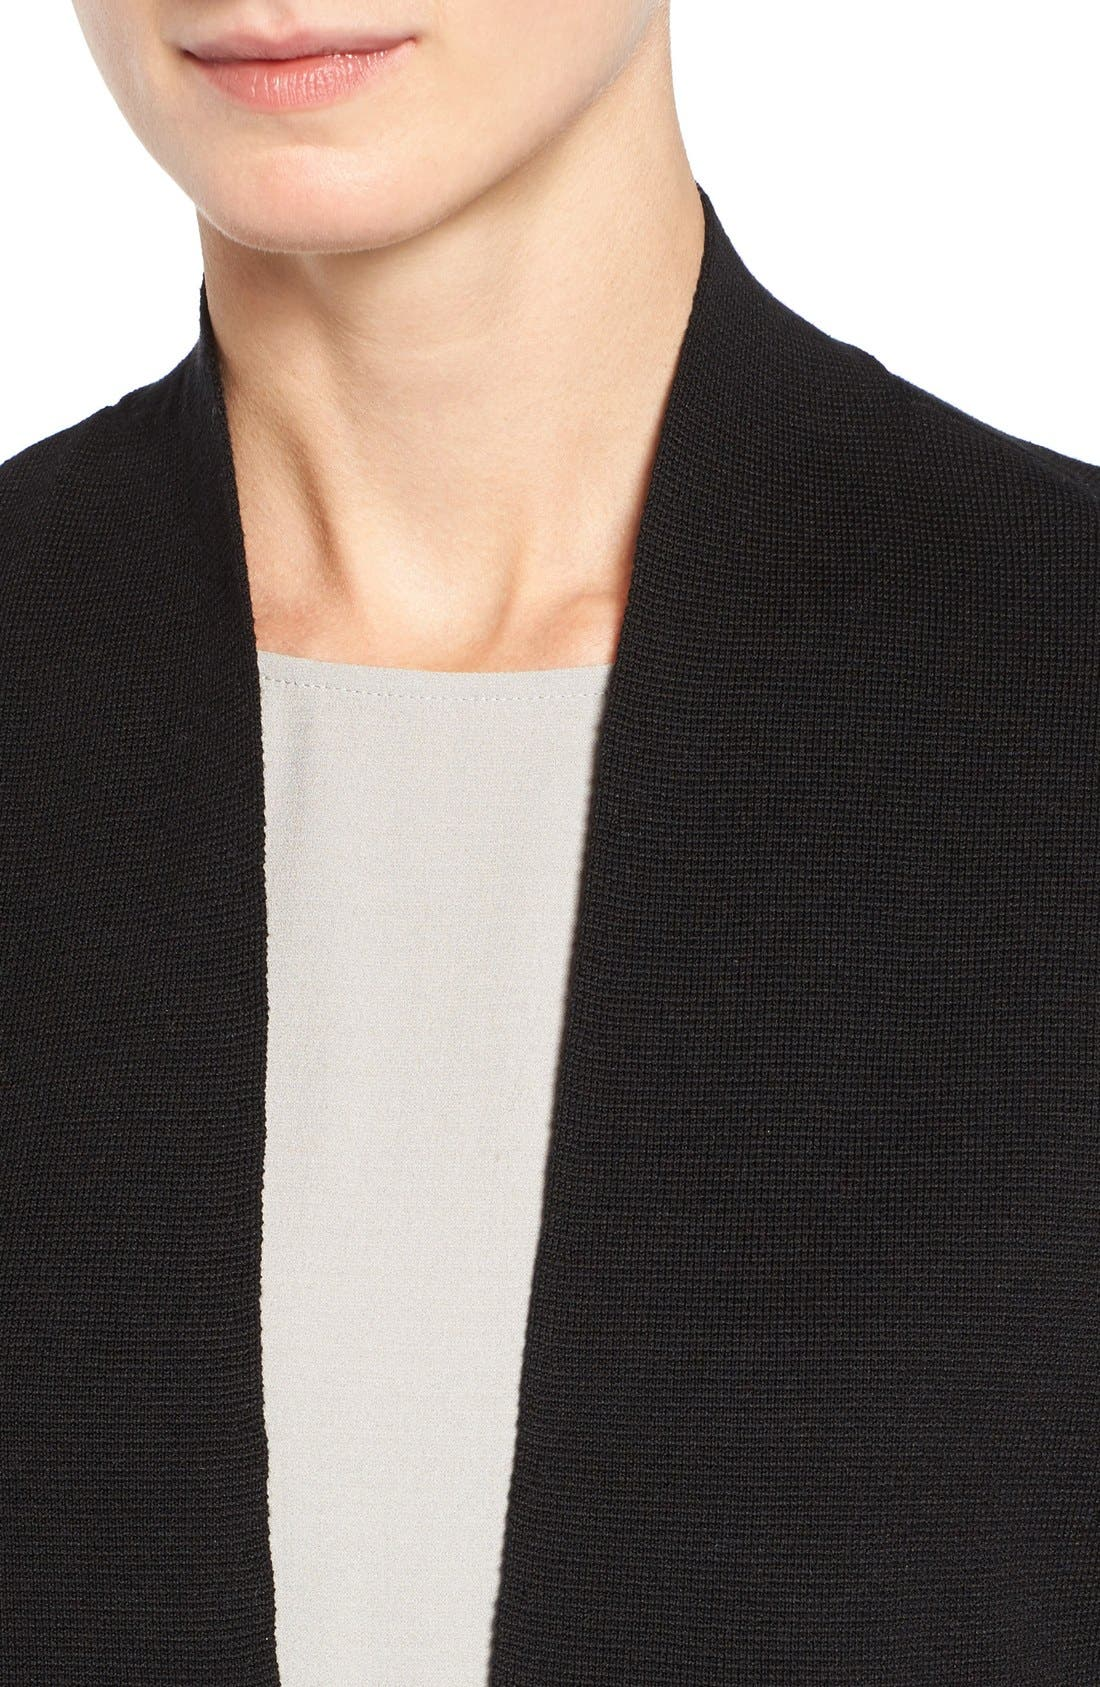 Silk & Organic Cotton Cardigan,                             Alternate thumbnail 5, color,                             001